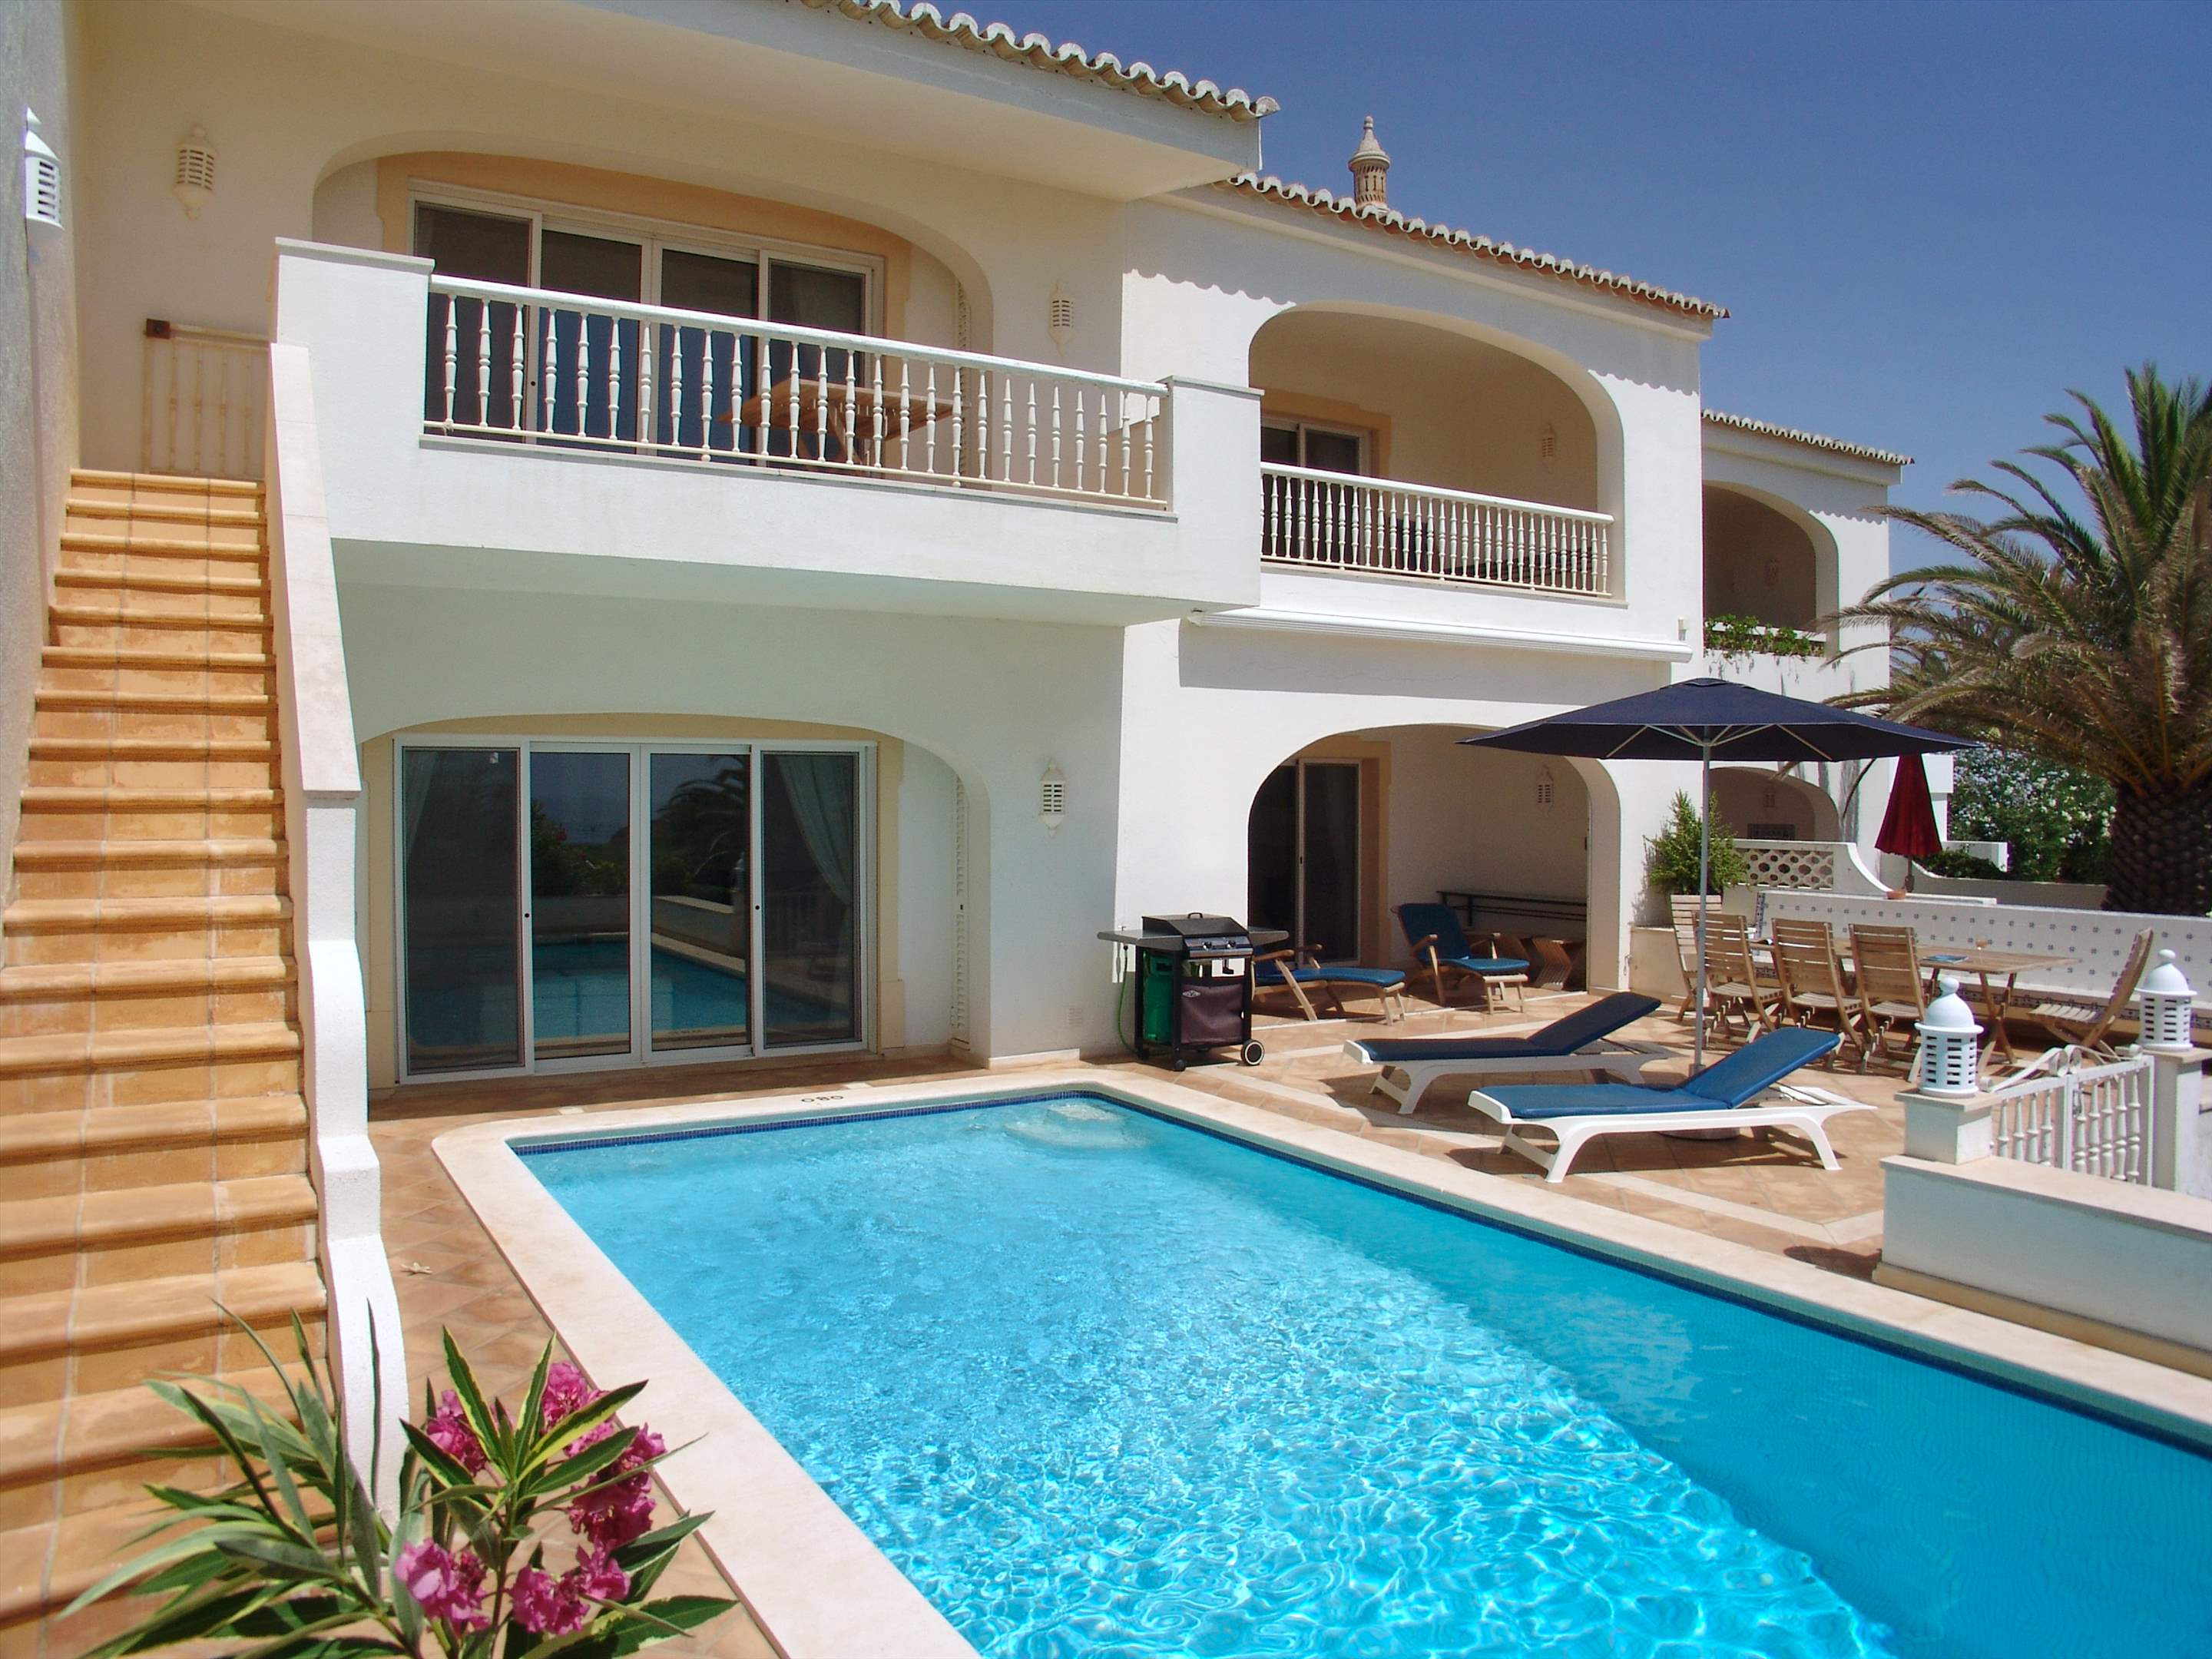 Villas Louisa, 5 bedroom, 5 bedroom villa in Vale do Lobo, Algarve Photo #1